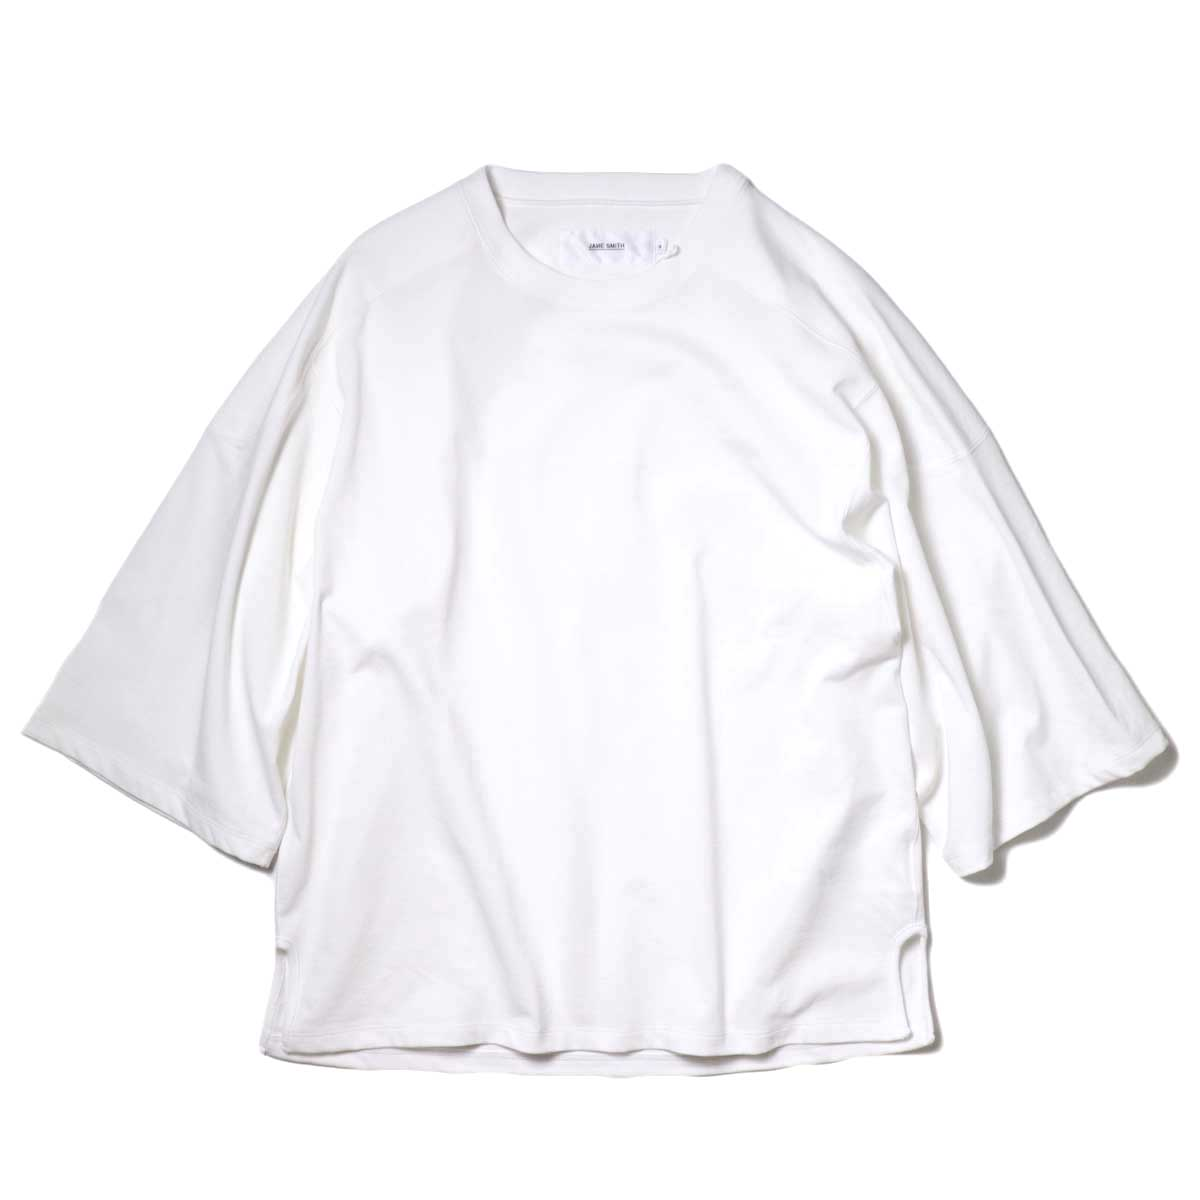 JANE SMITH / CLASSIC FOOTBALL T-SHIRT (White) 正面